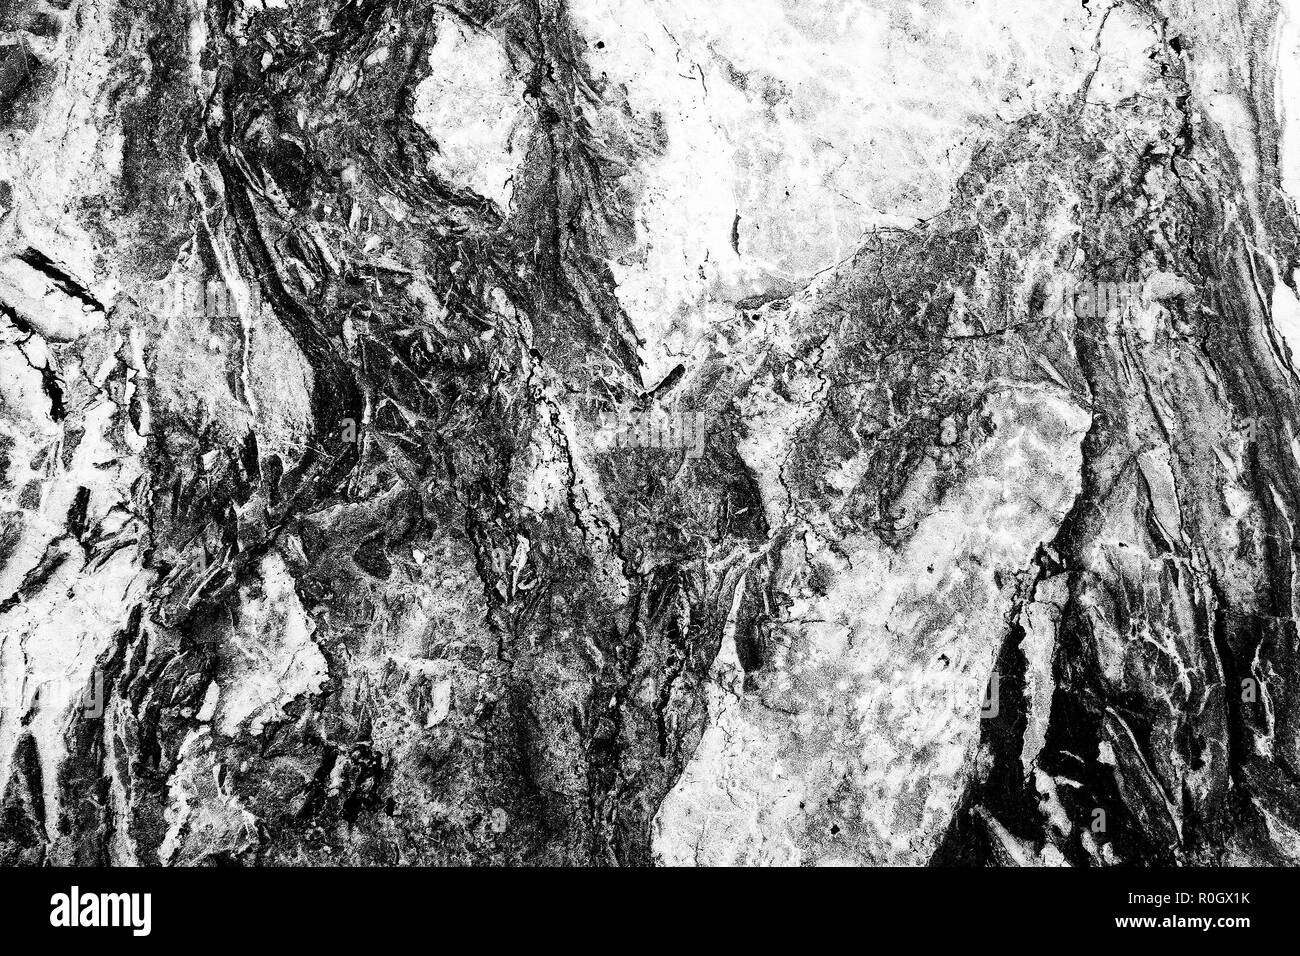 Black and white high contrast marble texture, desaturated high contrast image - Stock Image